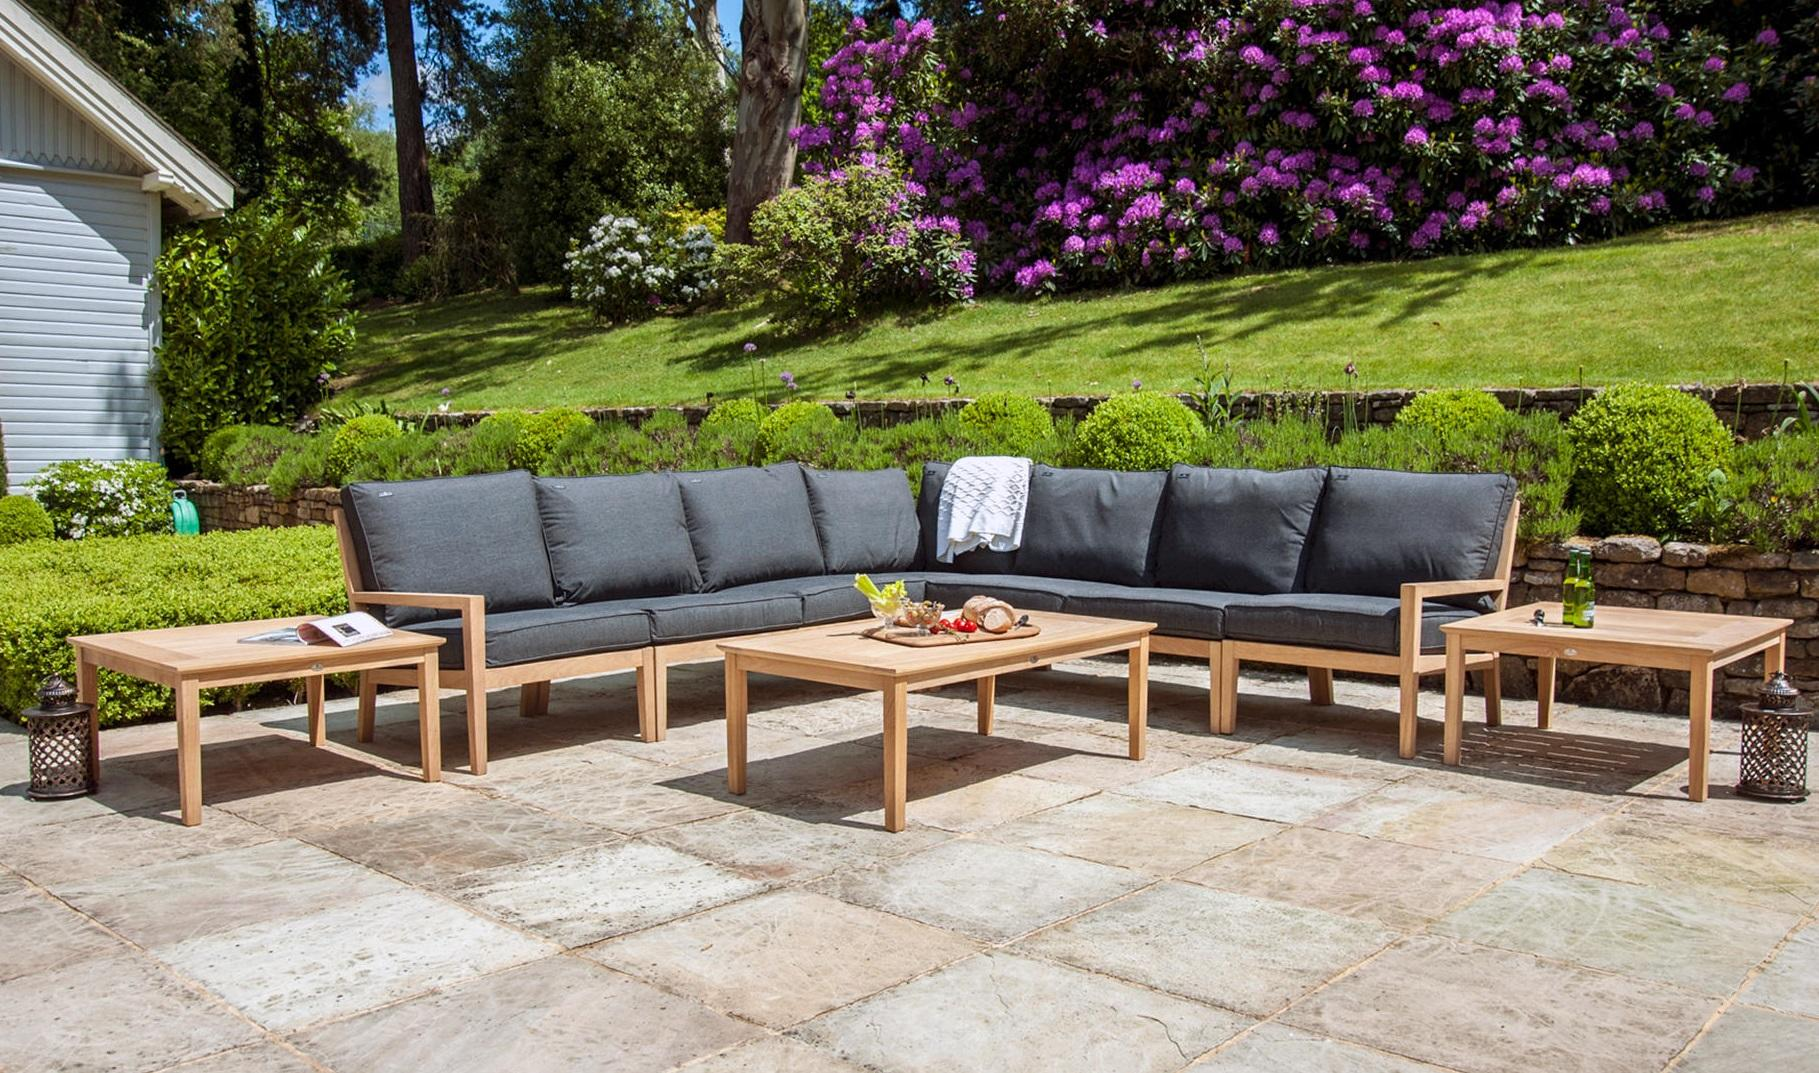 wood_garden_corner_lounge_set_outdoor_hardwood_roble_10_piece